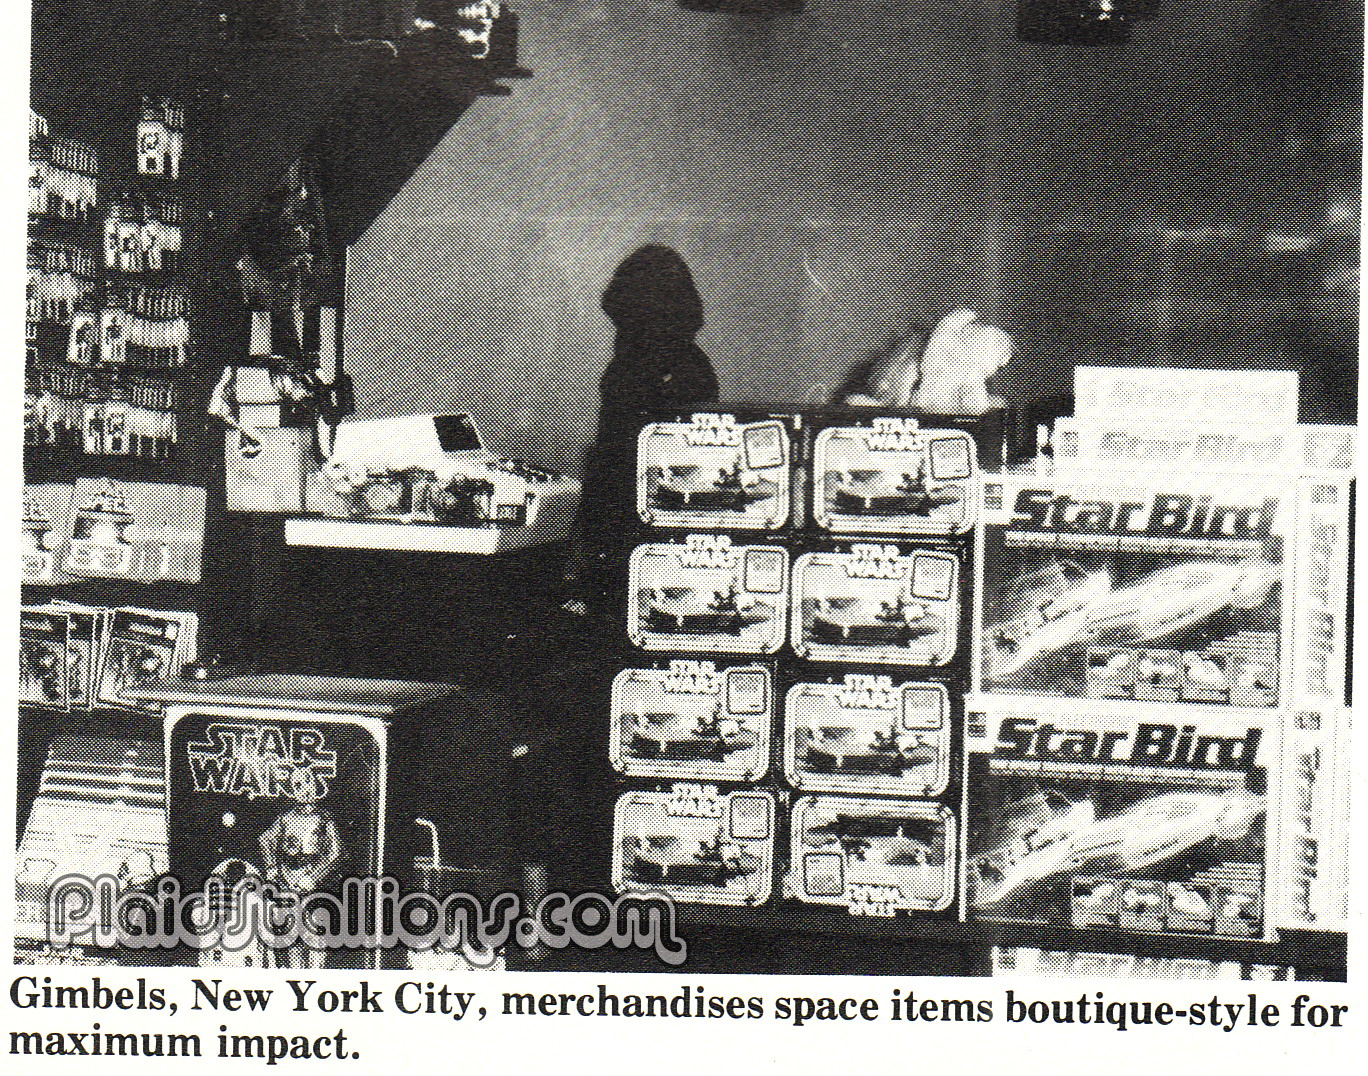 an amazing selection of kenner star wars, zymlex metal man and micronauts in 1979